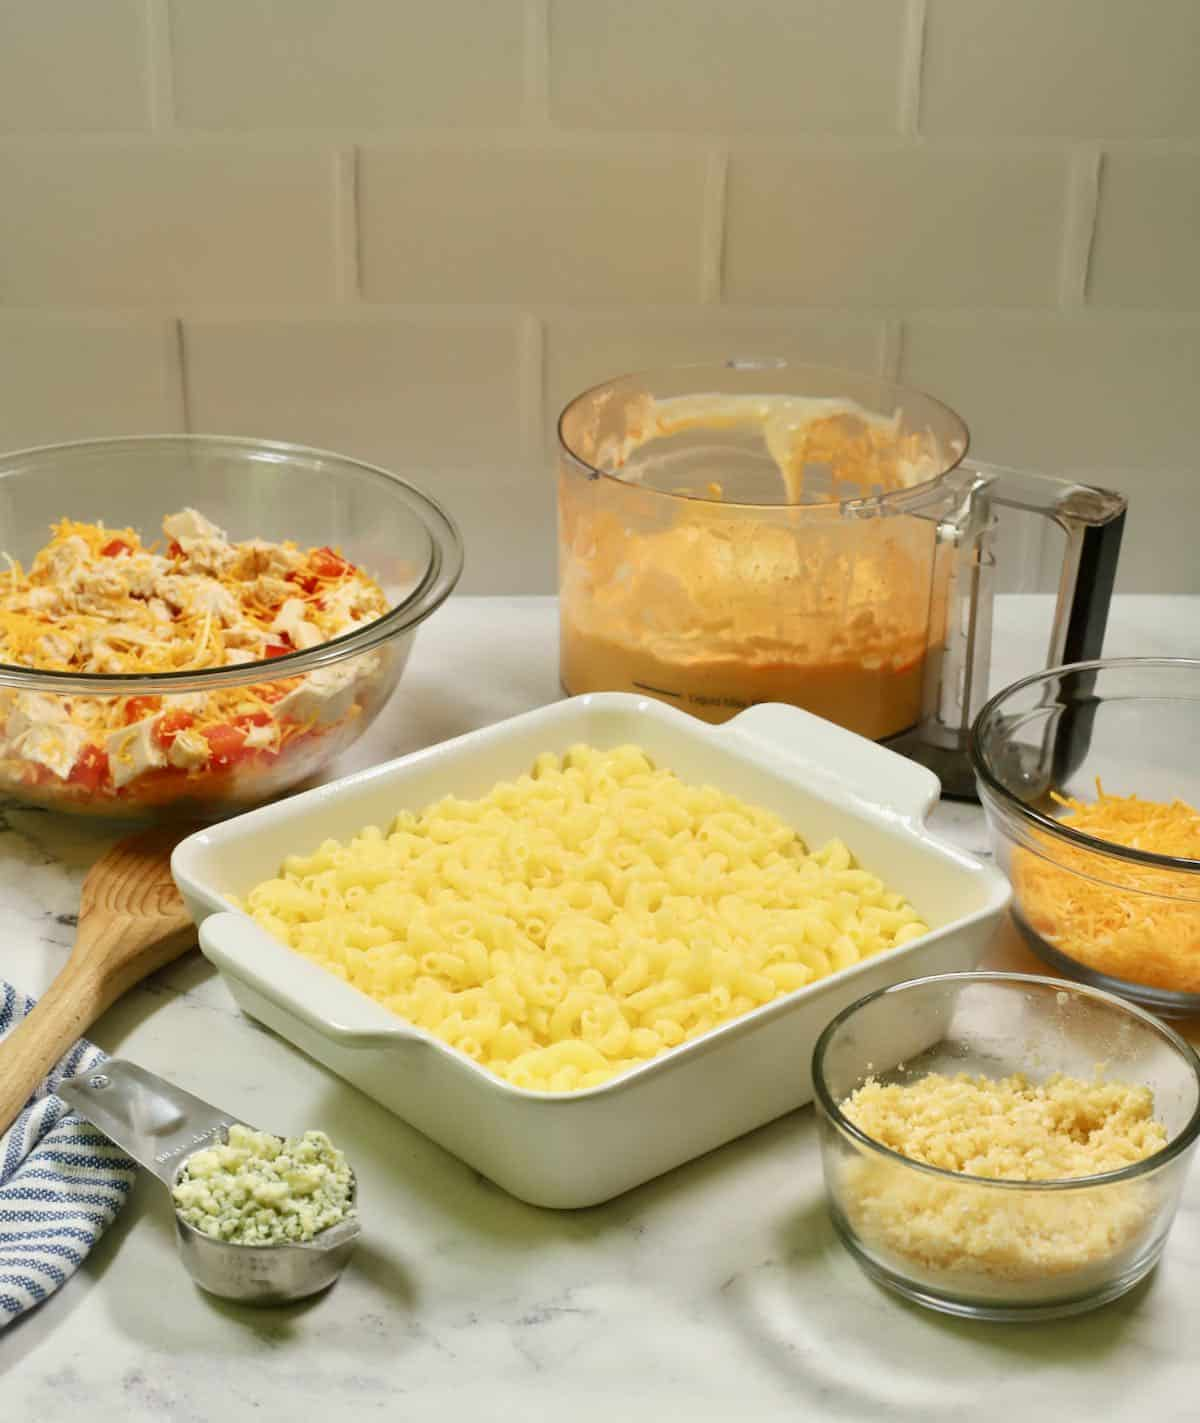 A square baking dish with pasta and a bowl of chicken and cheese.